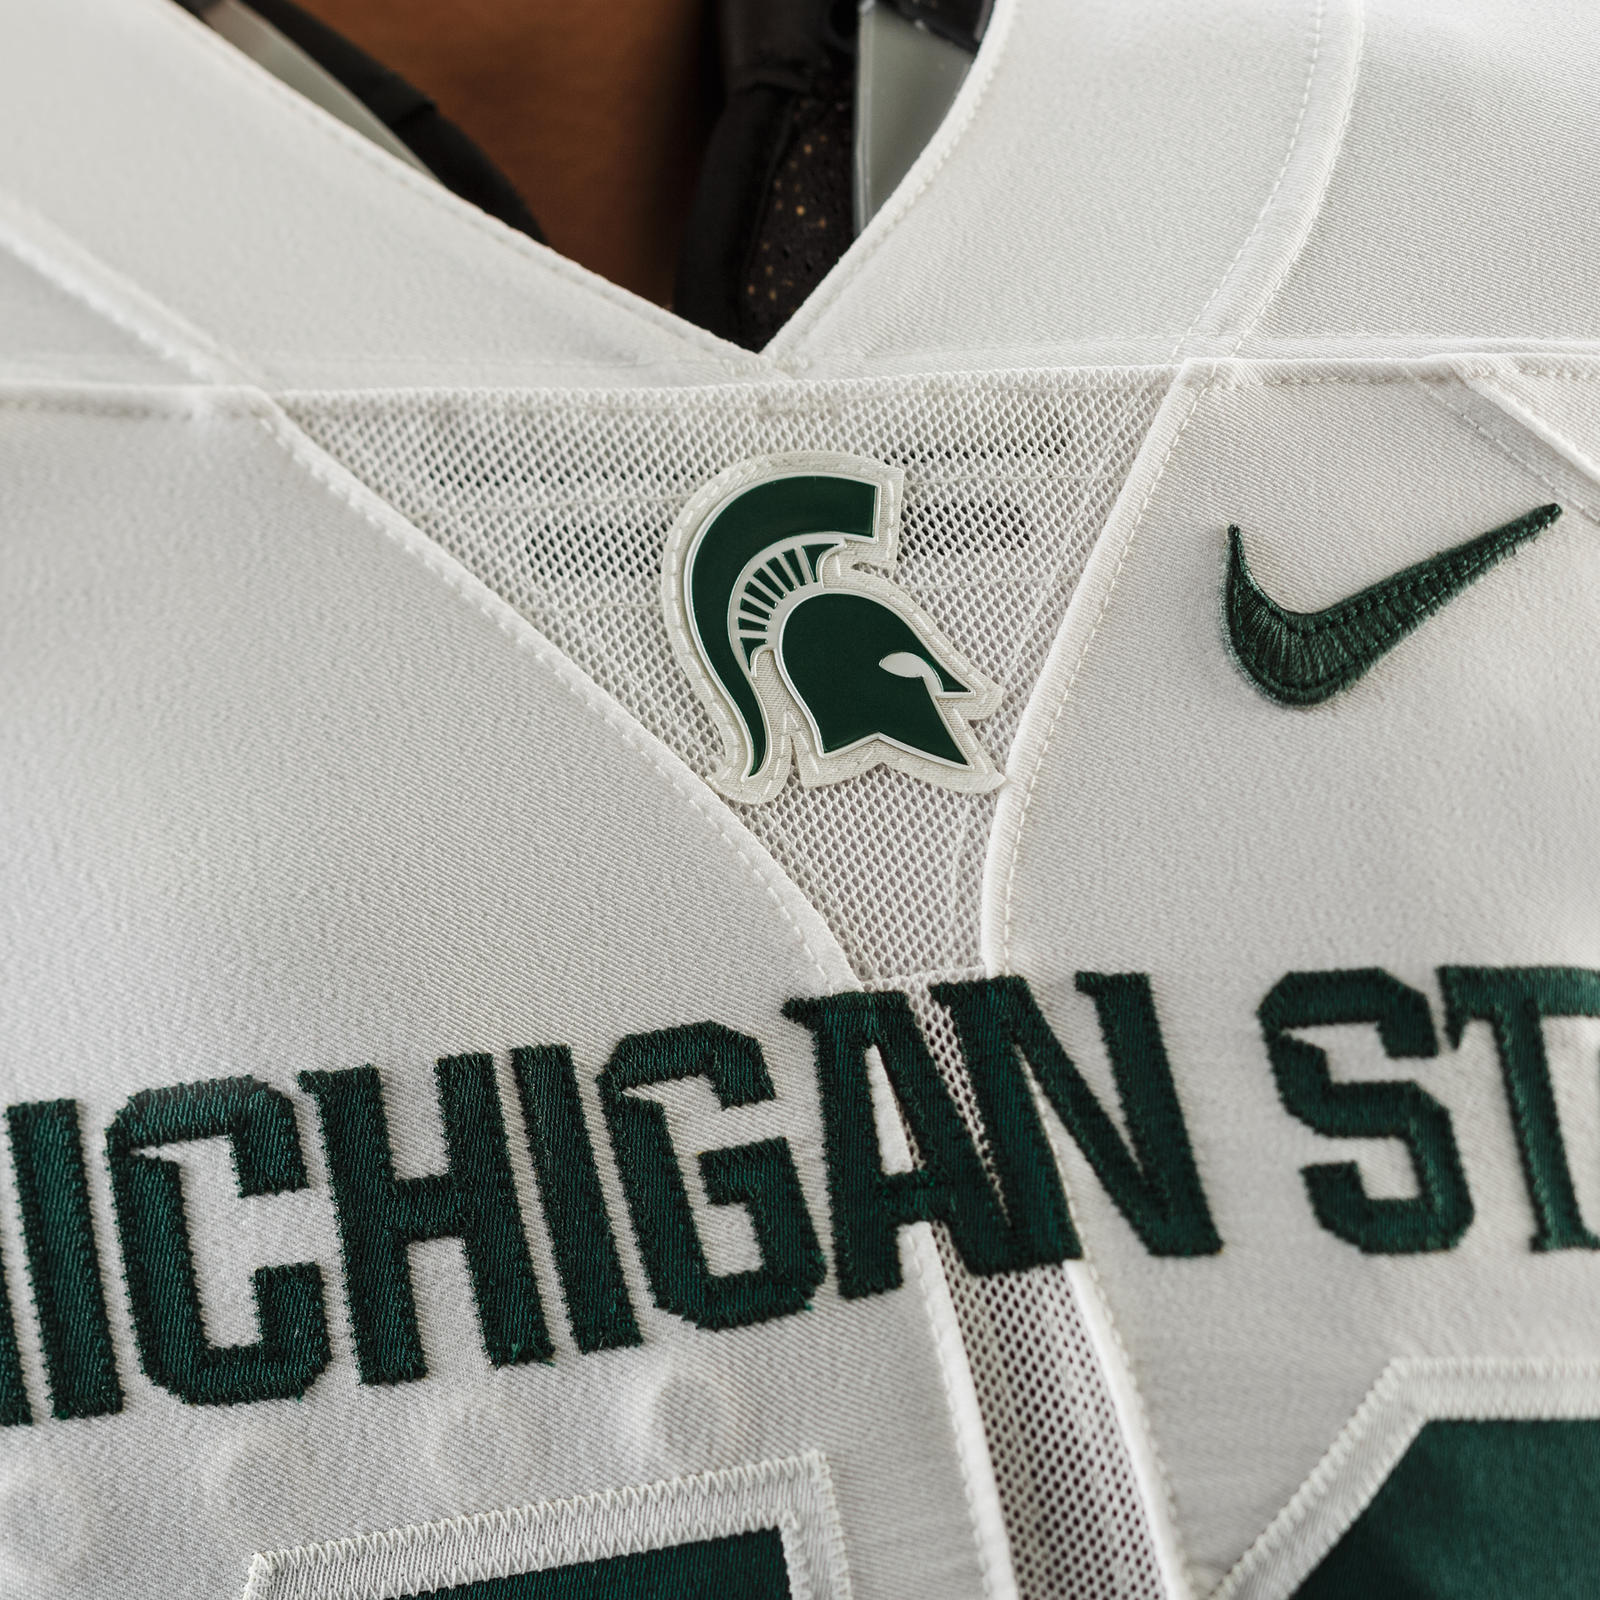 150320 Nike M Ichigan%20 State%20away 0712